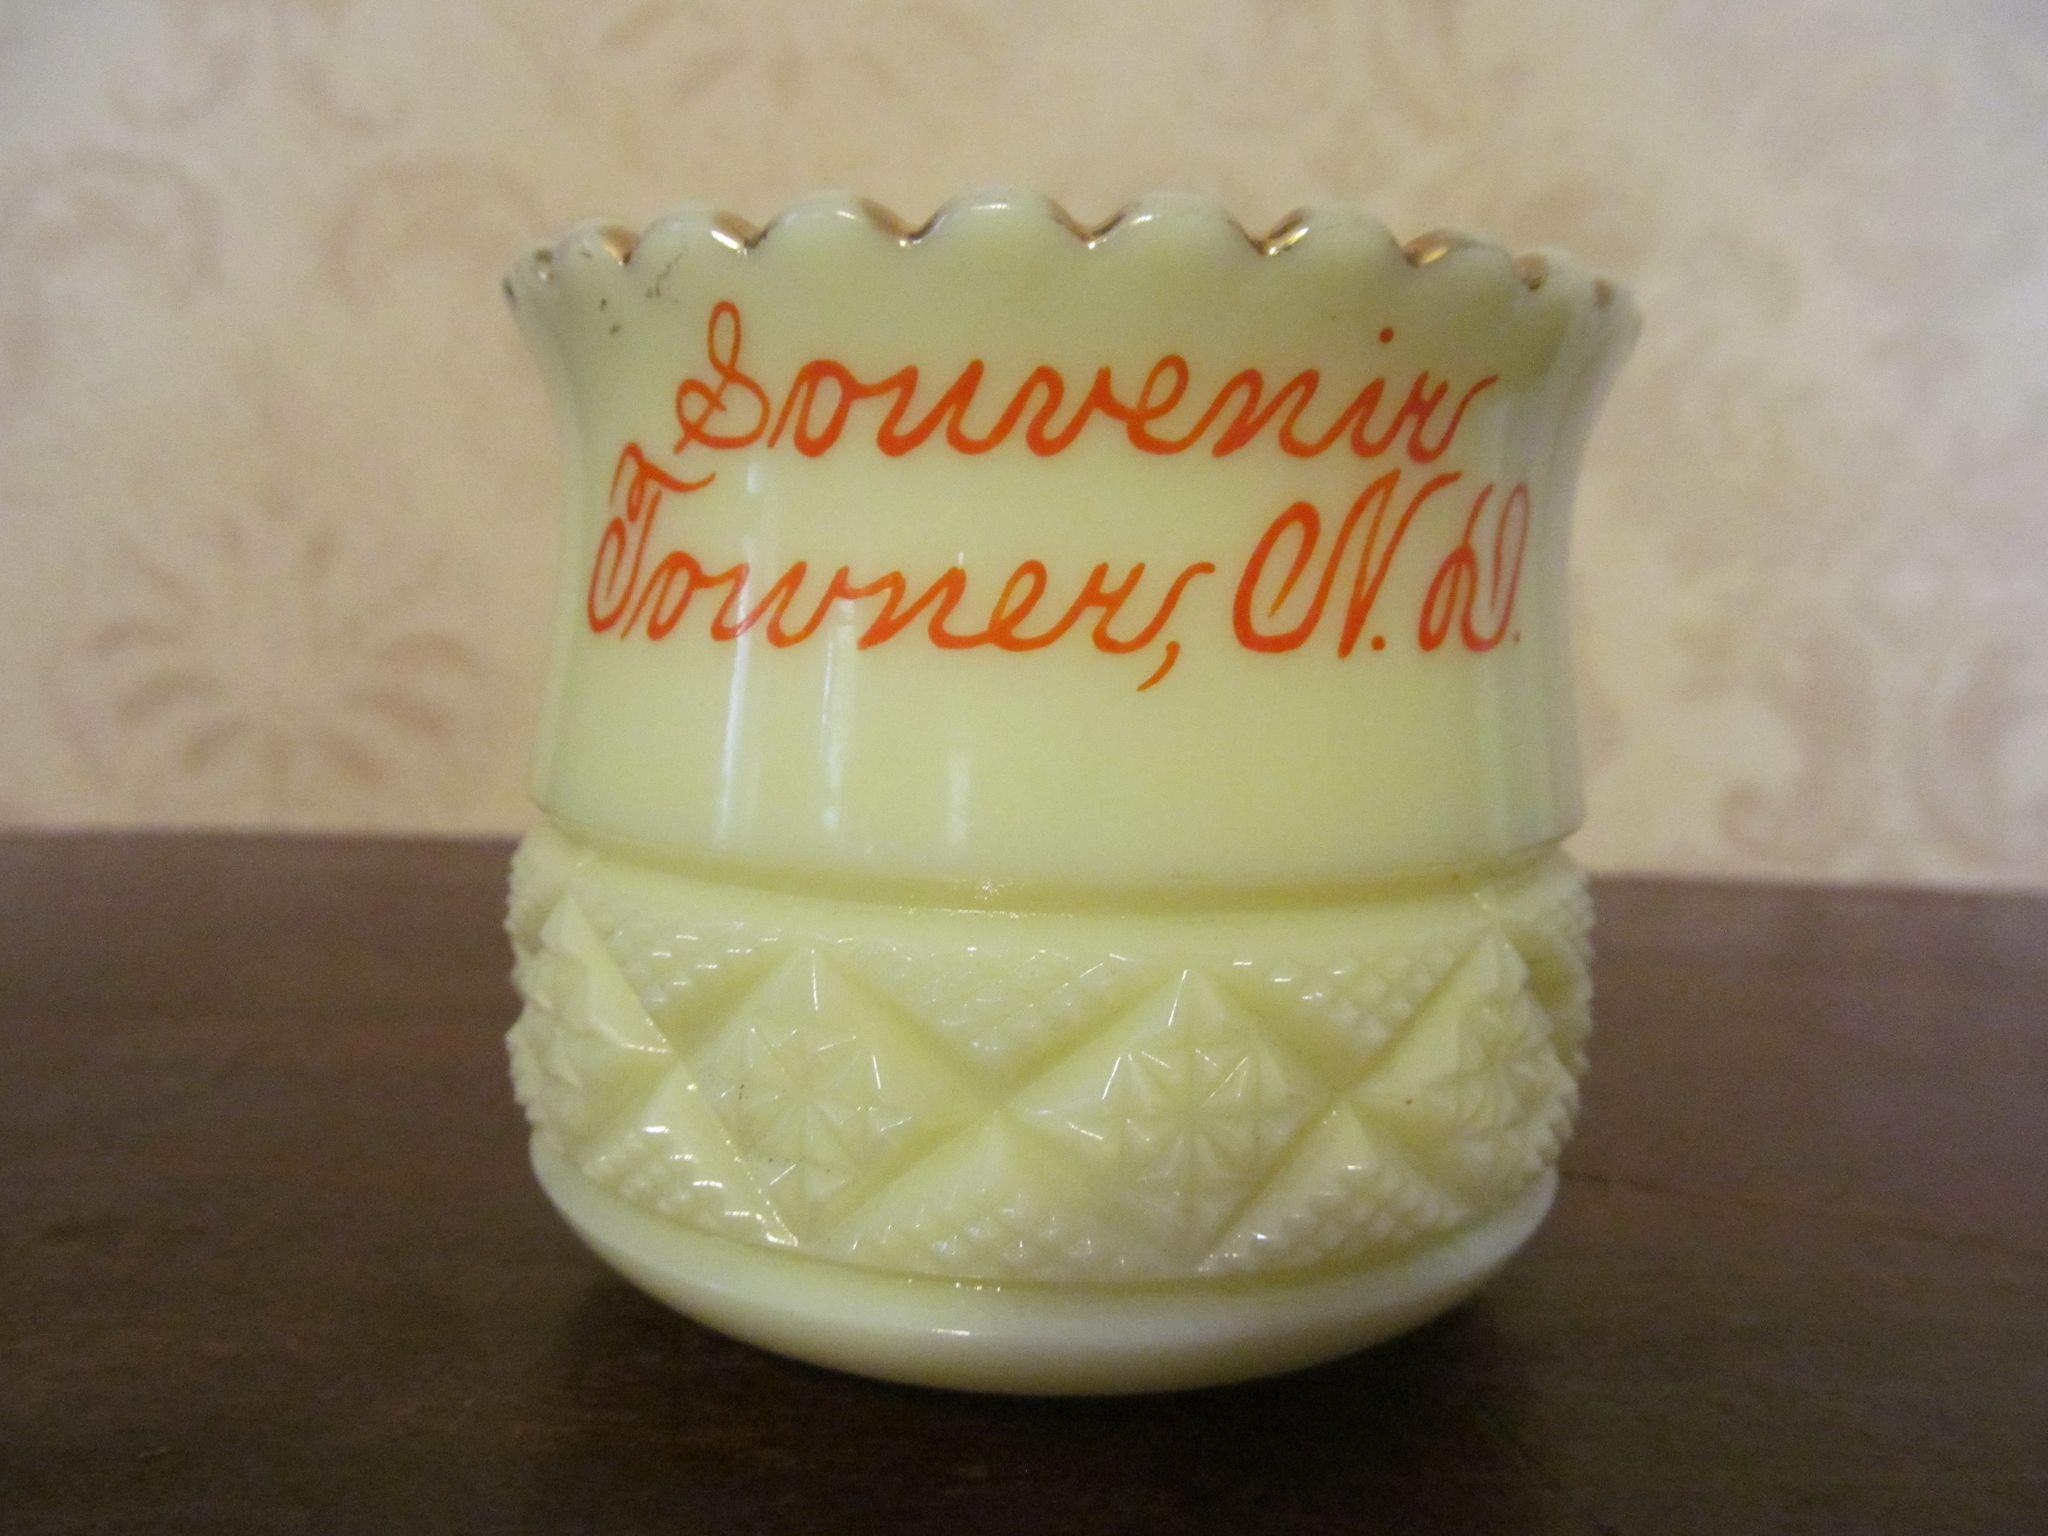 Heisey Custard Towner North Dakota Cut Block Souvenir Toothpick Holder